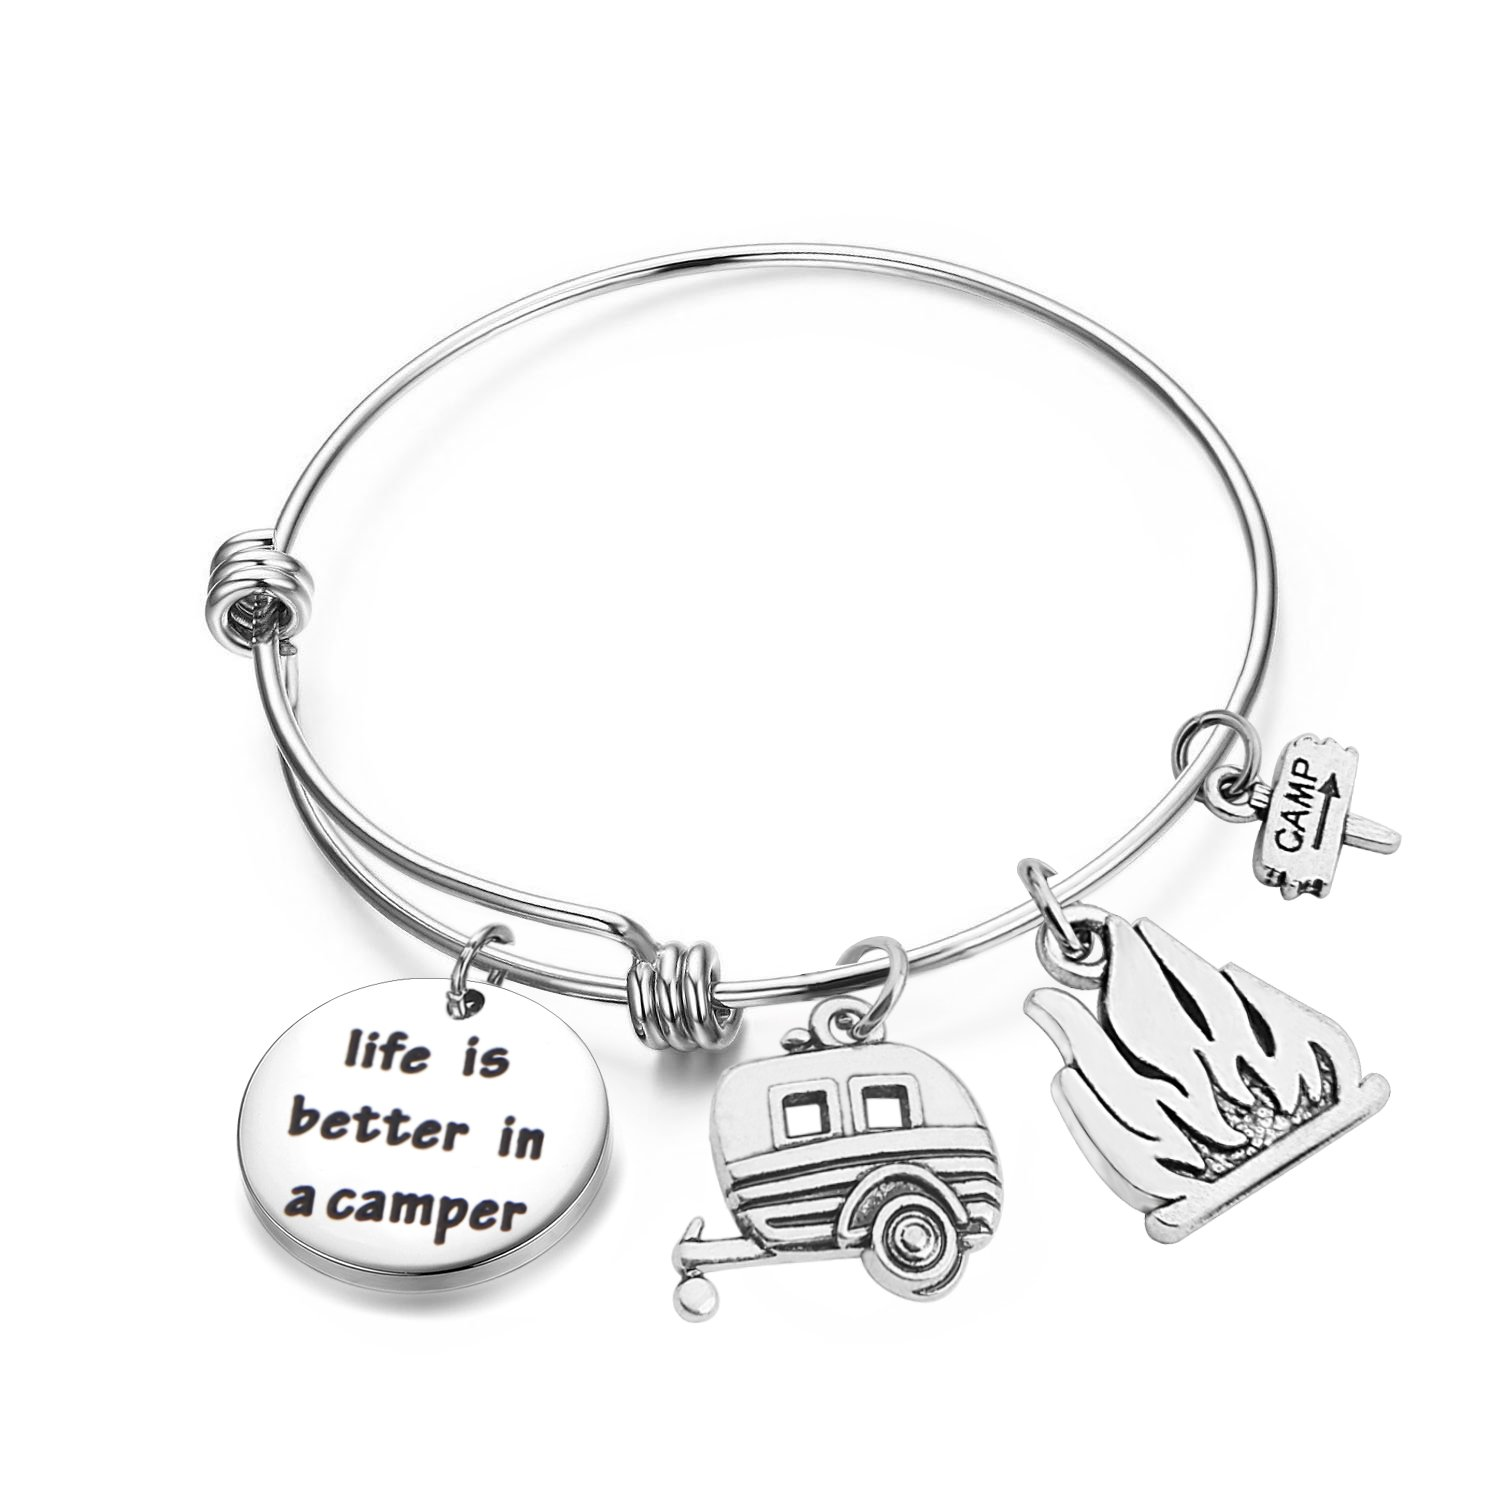 Camper Bracelet Life is Better in a Camper Retirement Bracelet (Camper bracelet)